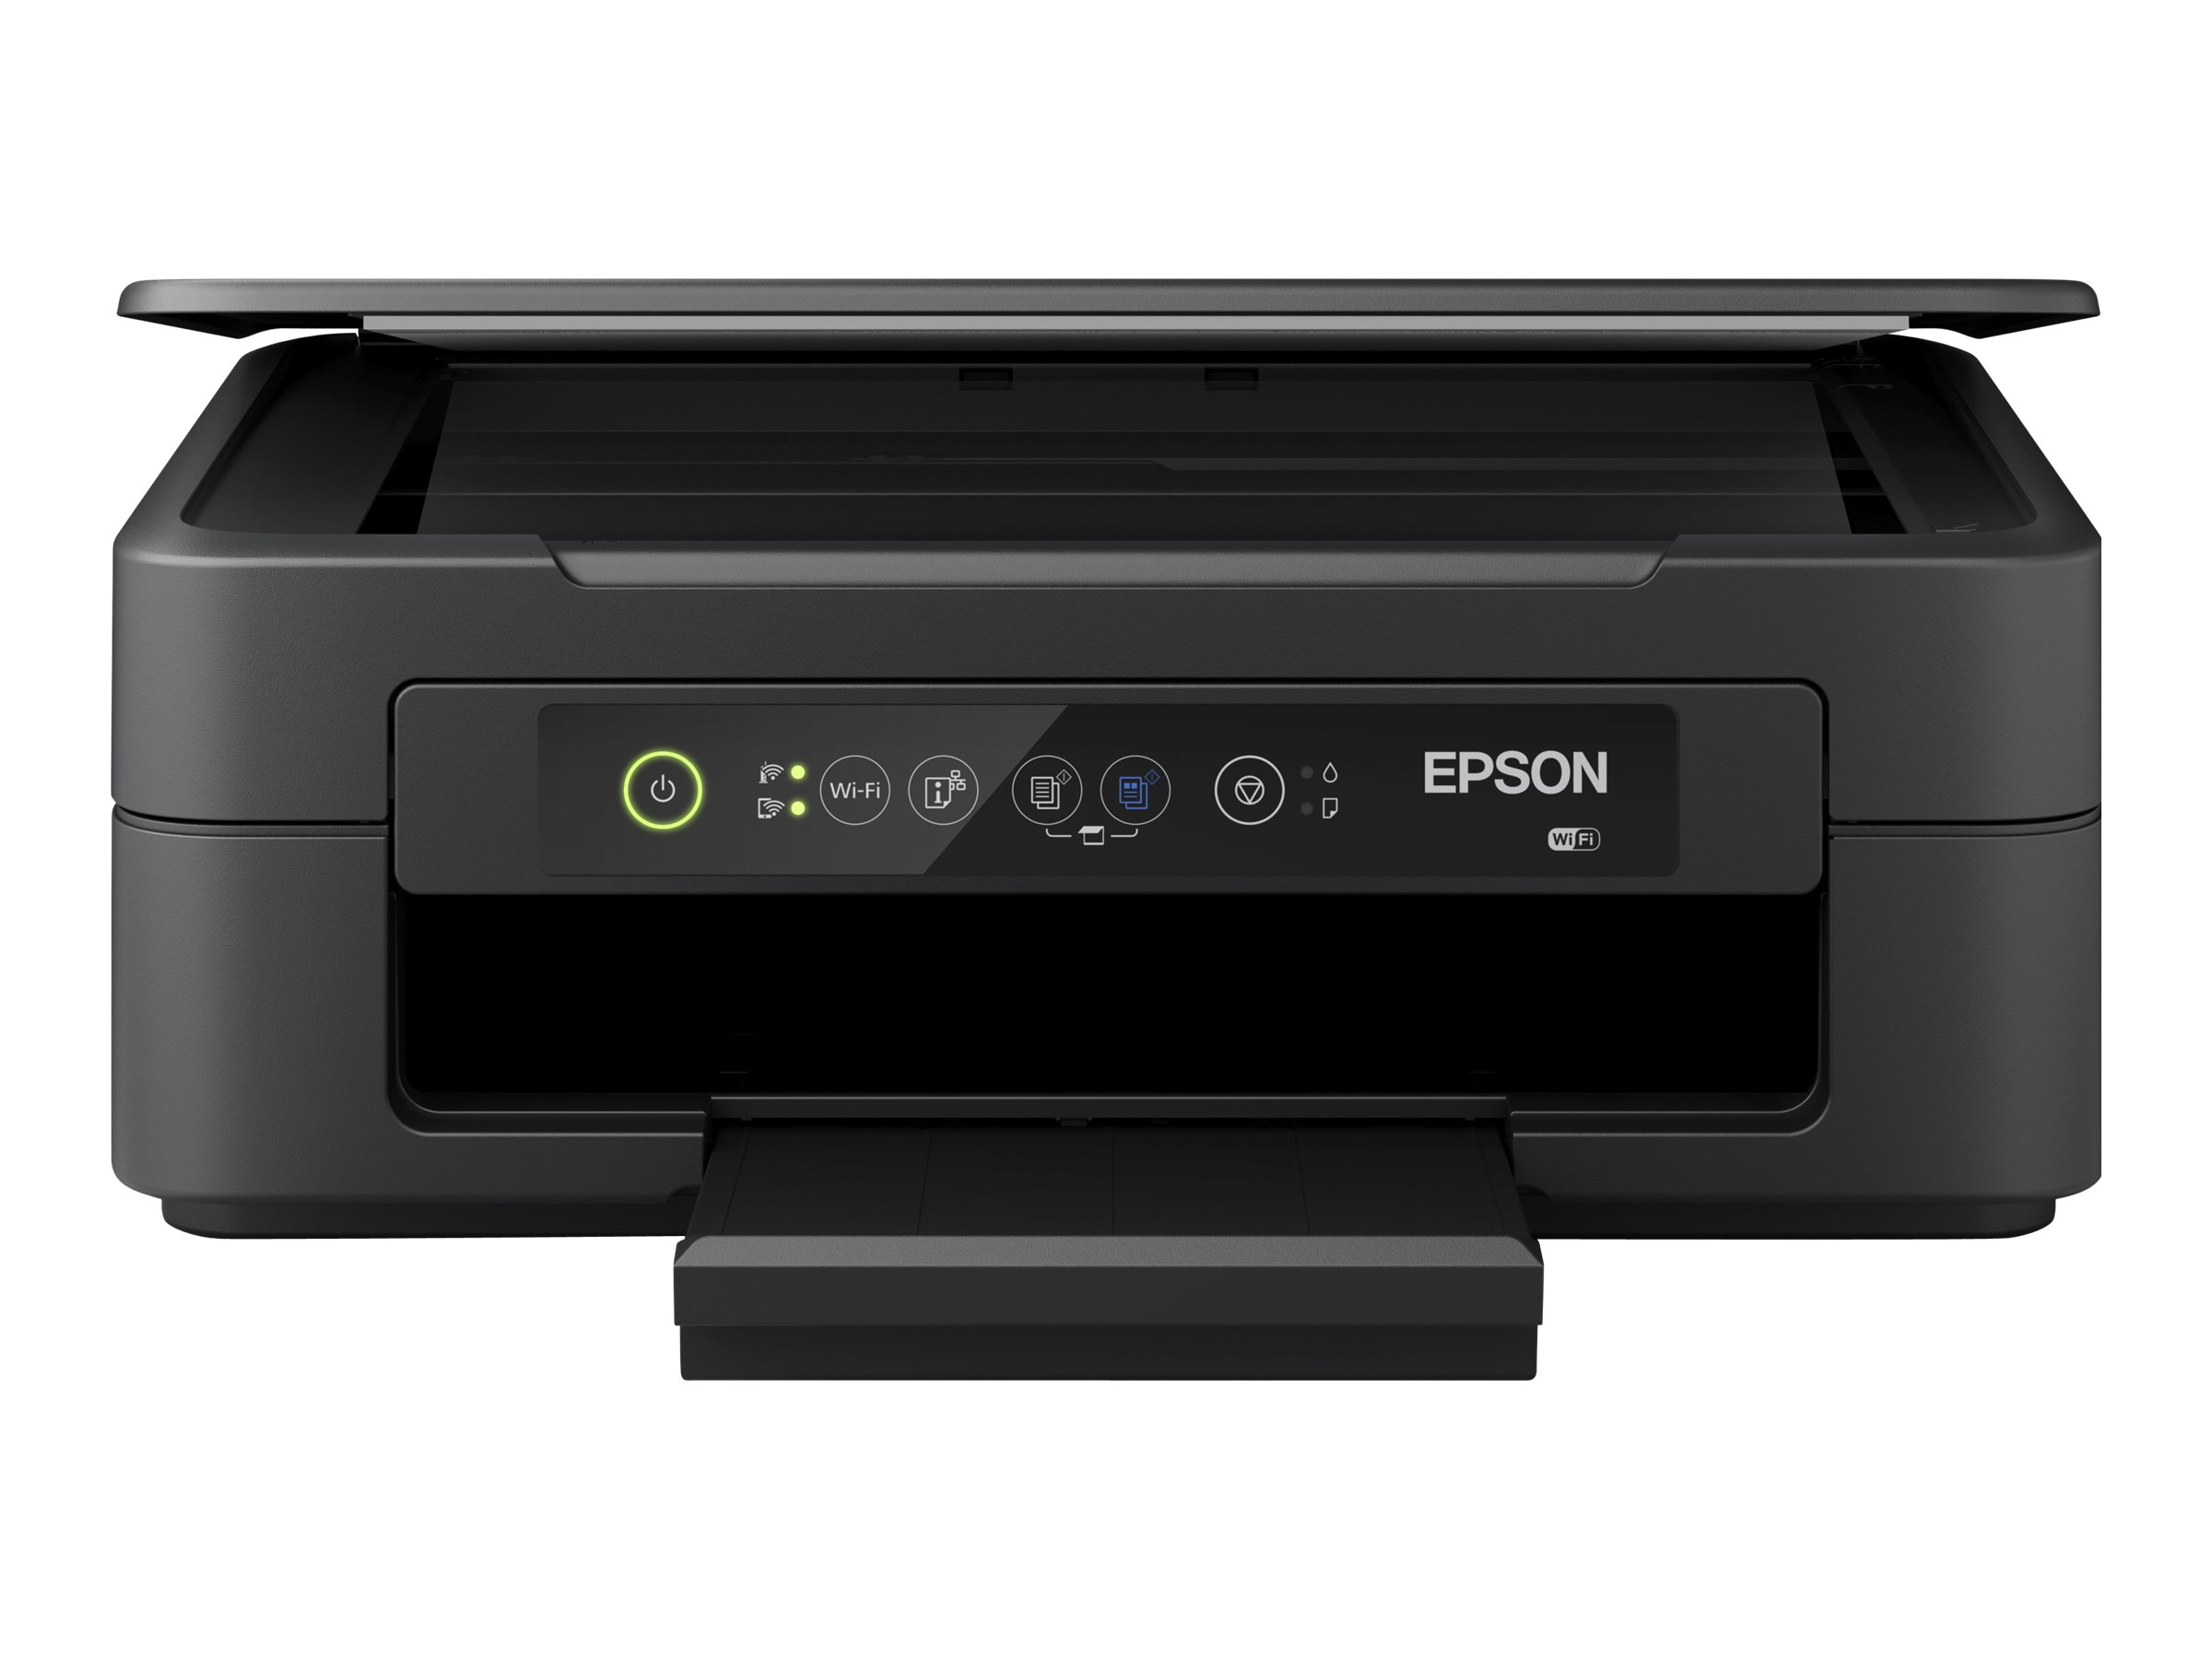 Epson Expression Home XP-2100 - Multifunktionsdrucker - Farbe - Tintenstrahl - A4/Legal (Medien)